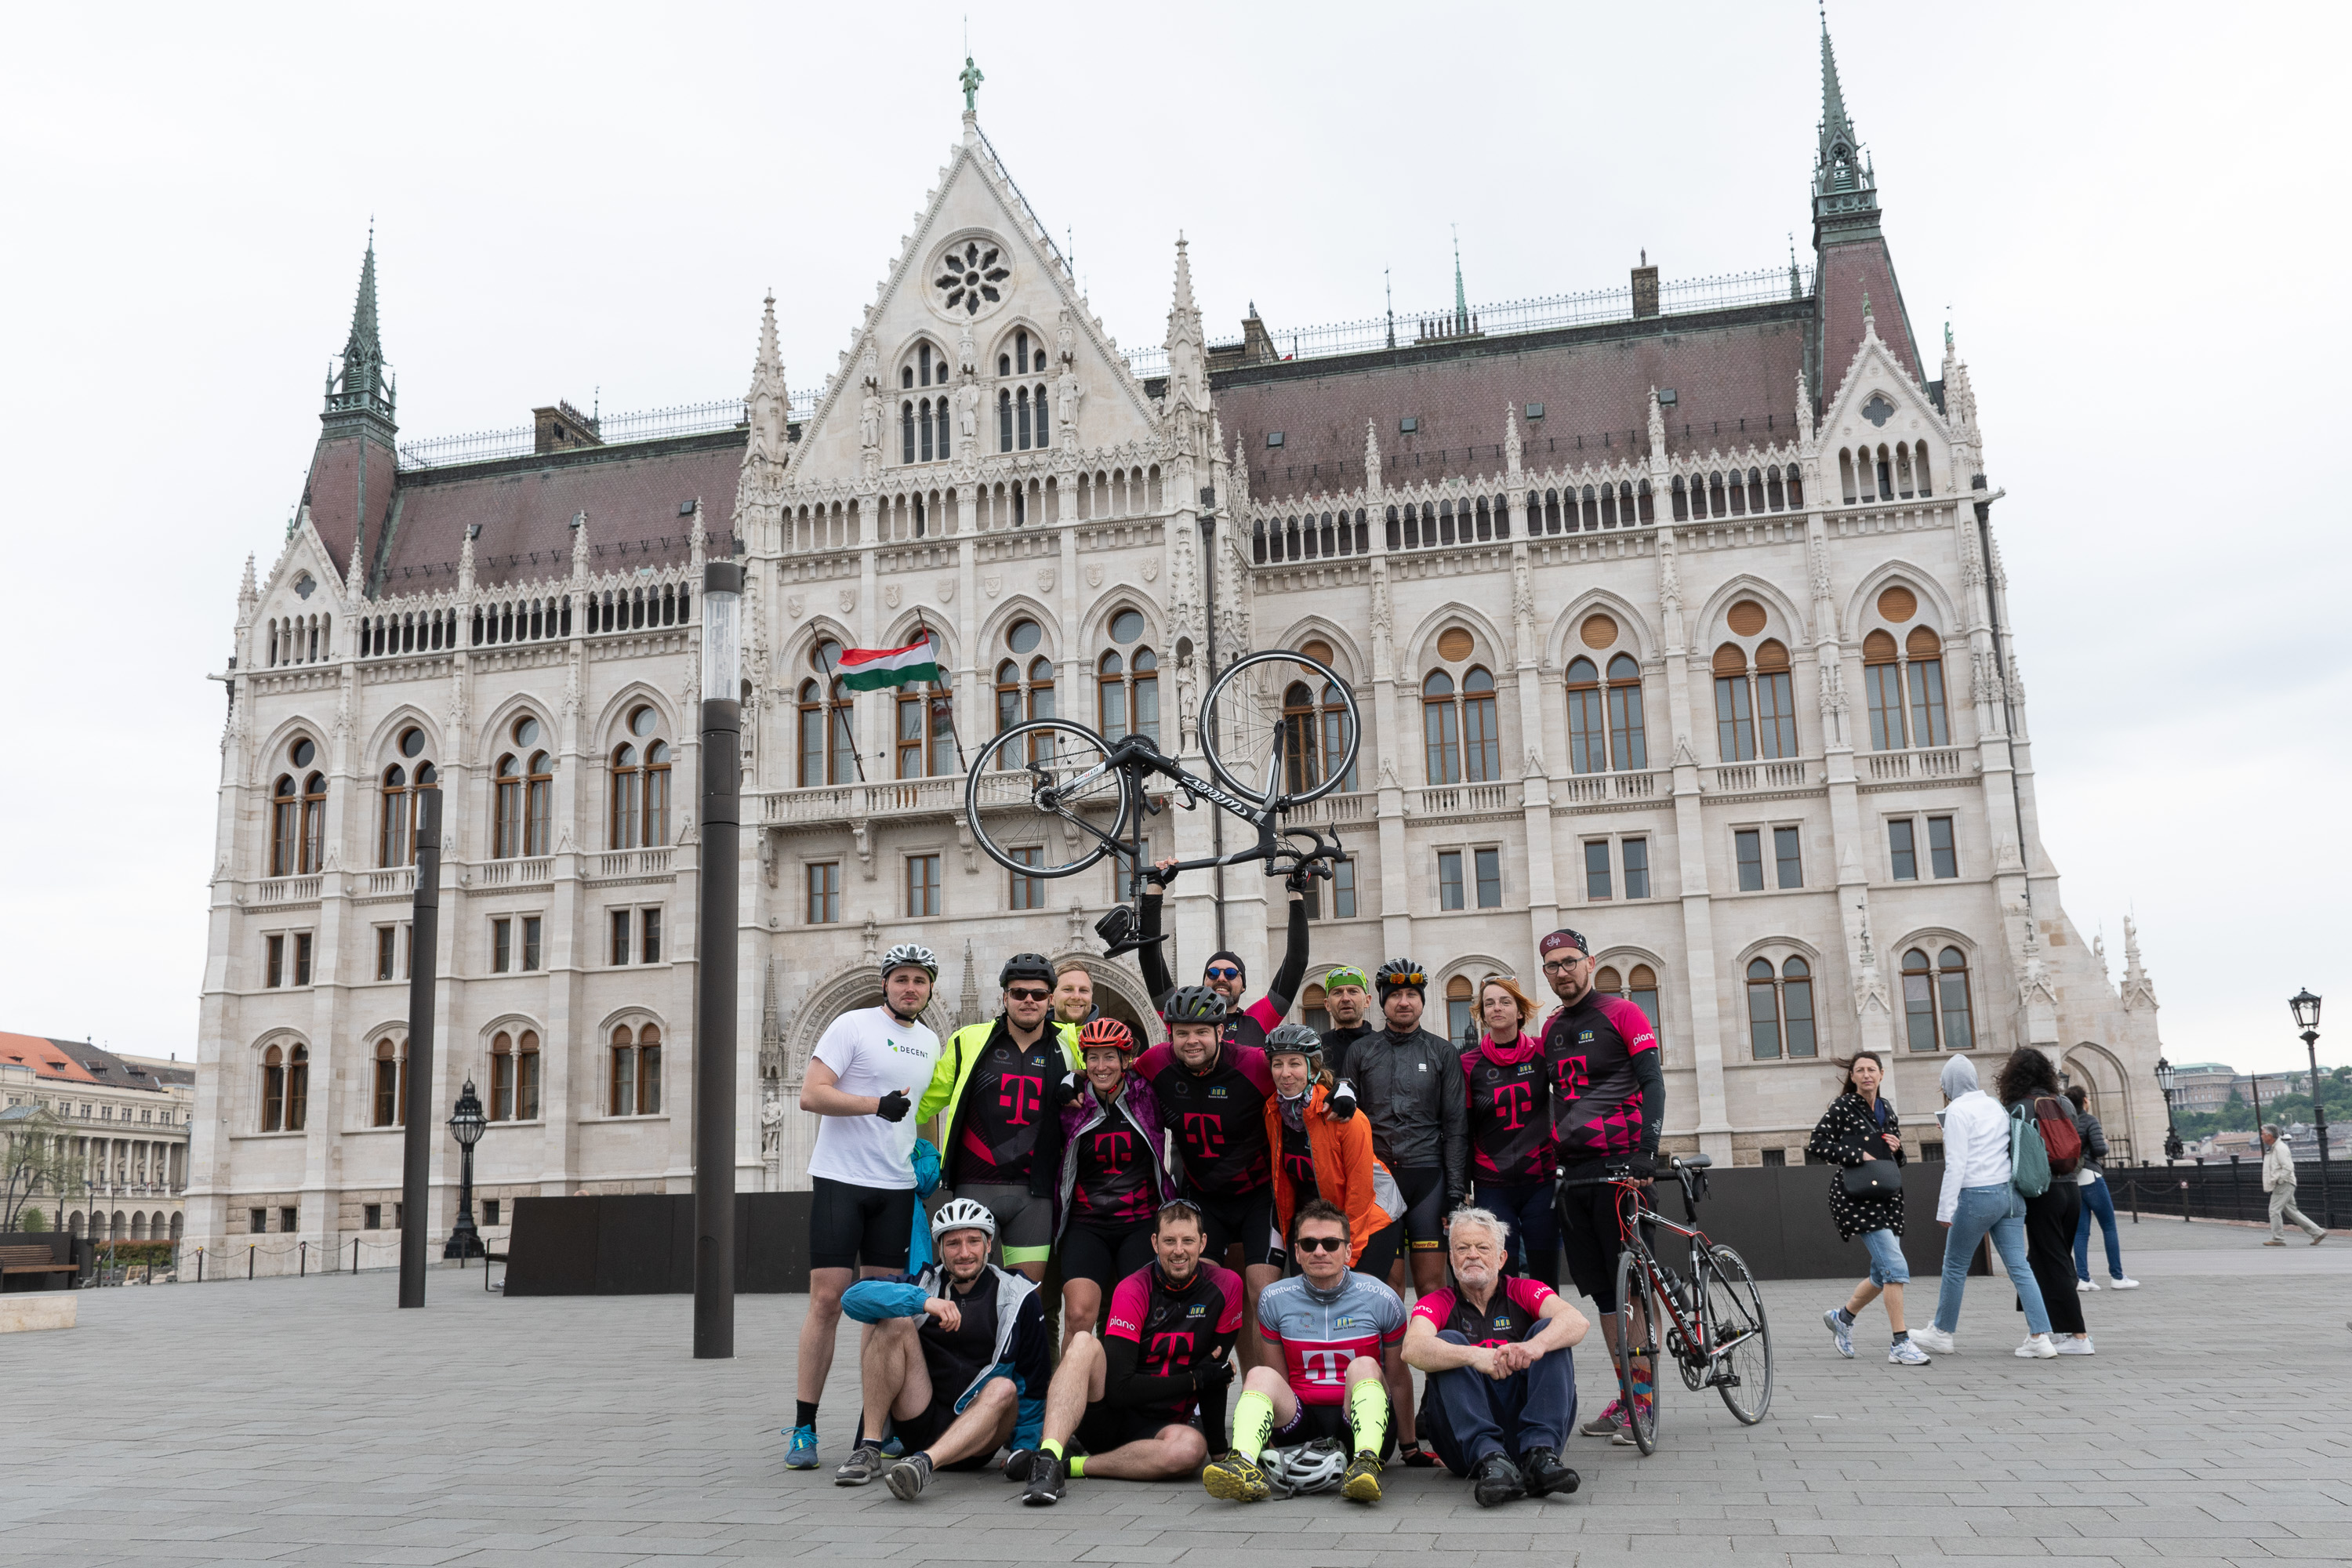 Techbikers CEE 2019: Techbikers have arrived to Budapest!